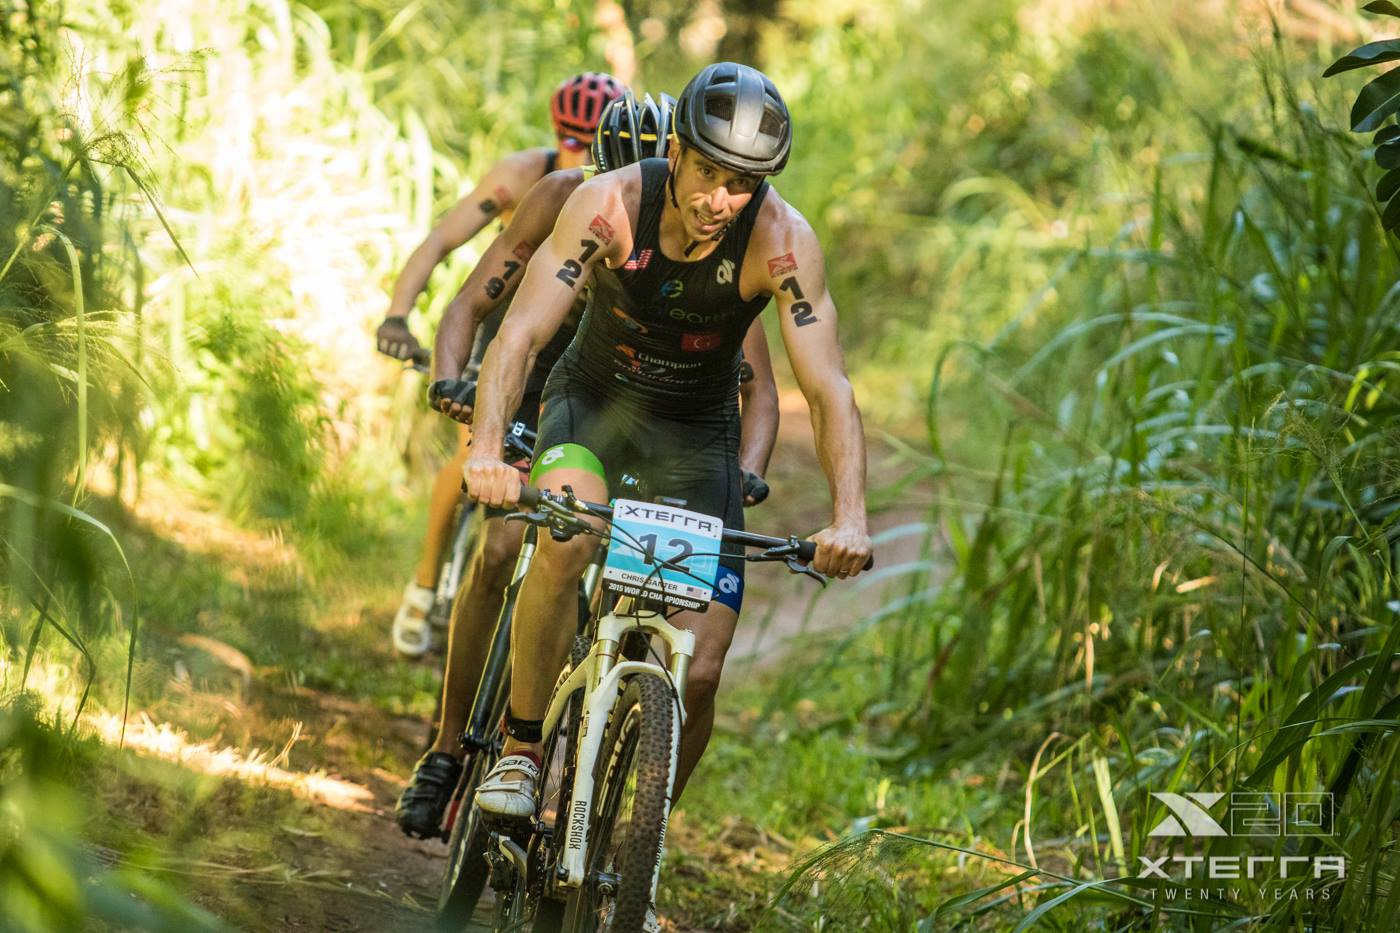 XTERRA_WORLD_CHAMPIONSHIP_2015_00027